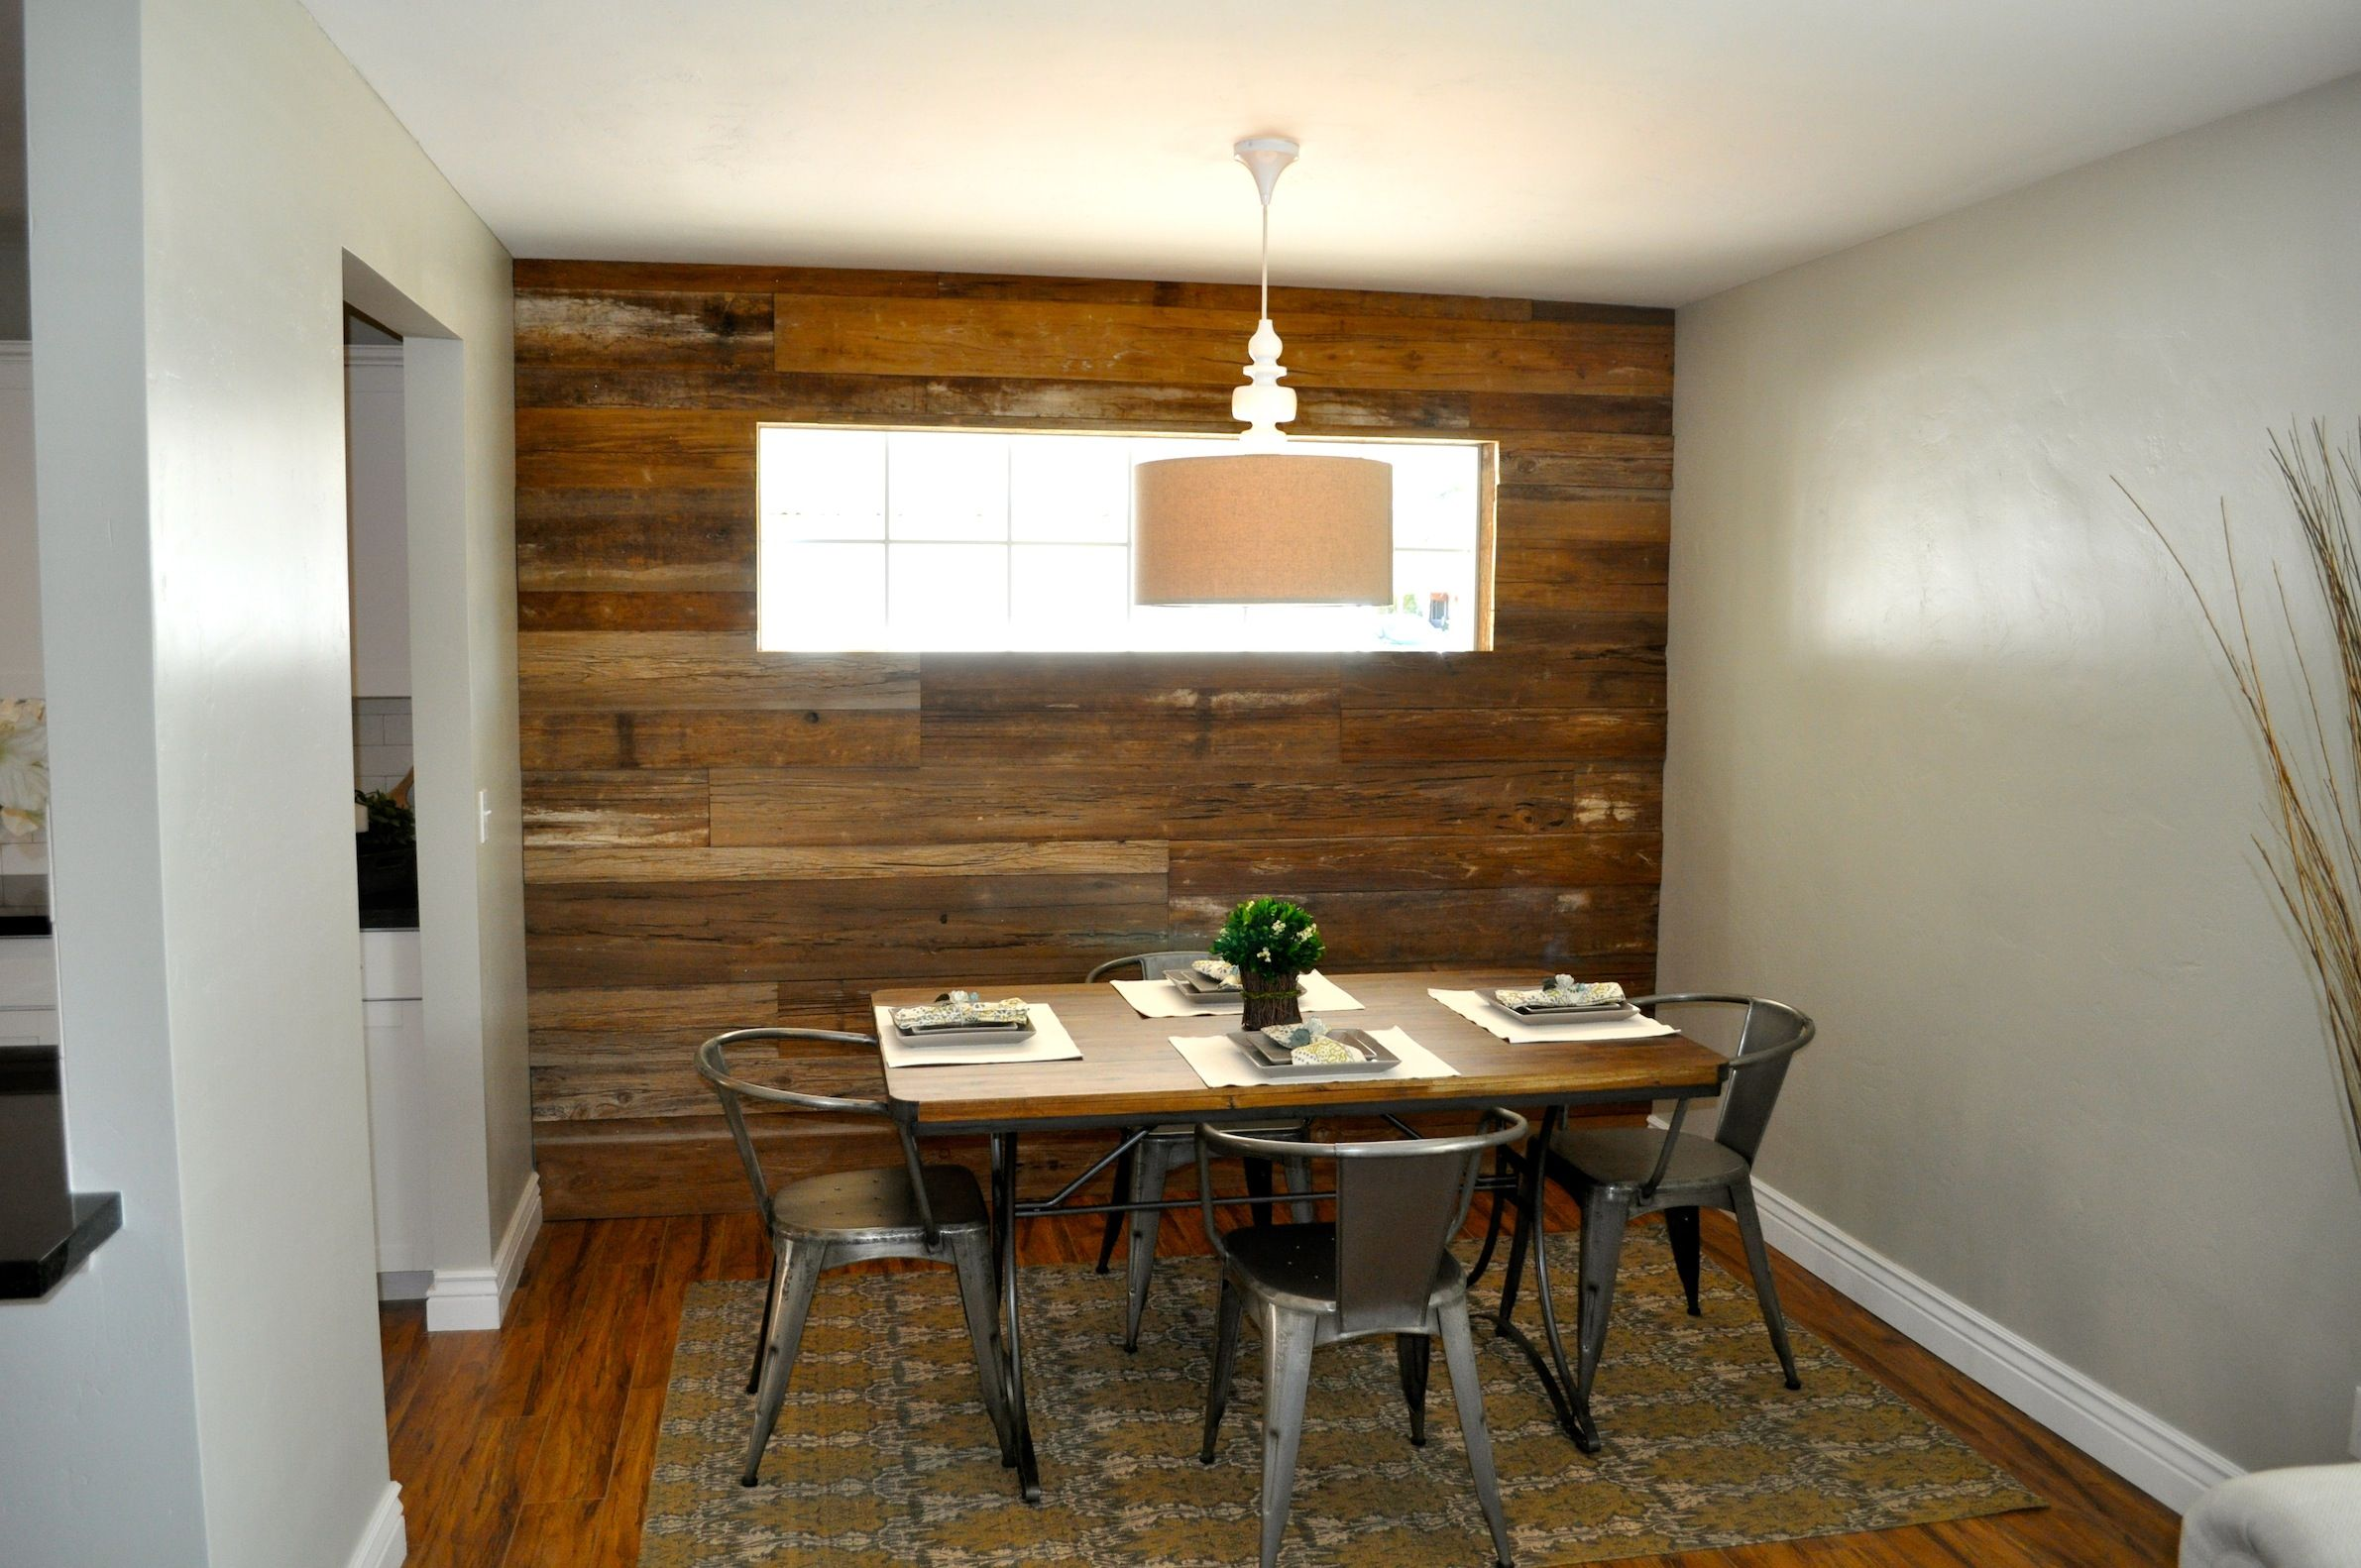 paneling wall specifications creative reclaimed product dek floors interior barn board walls